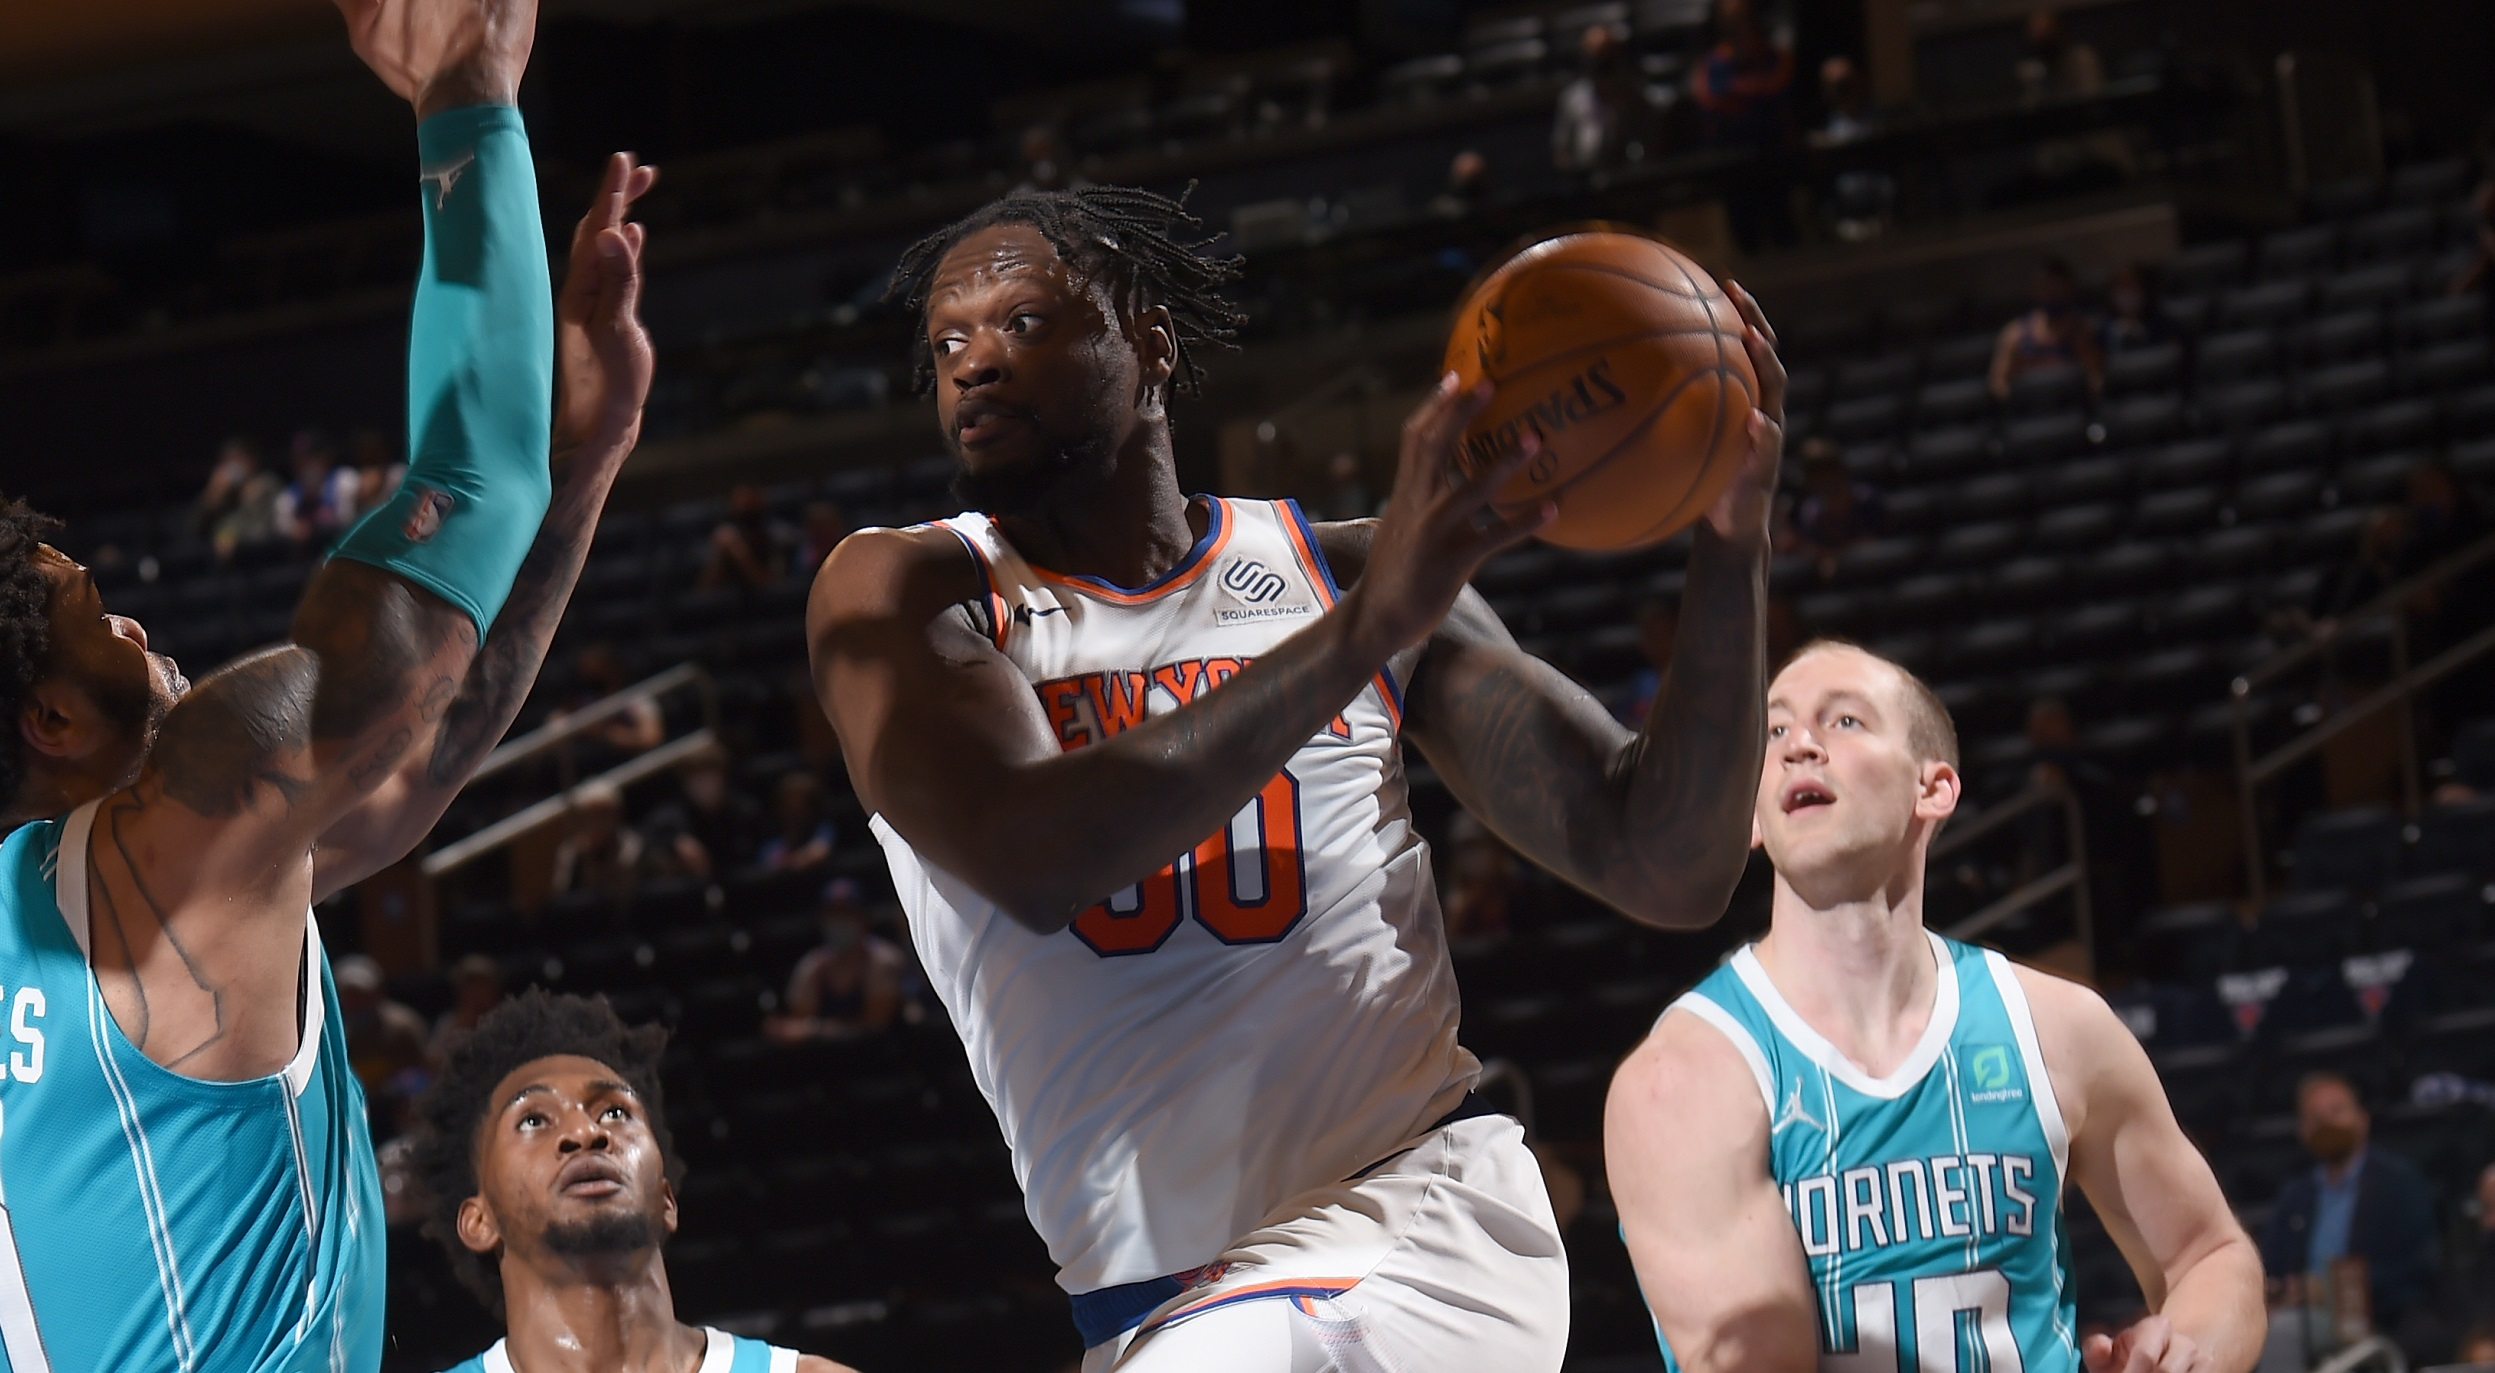 Knicks climb to 4th in East after beating Hornets in OT